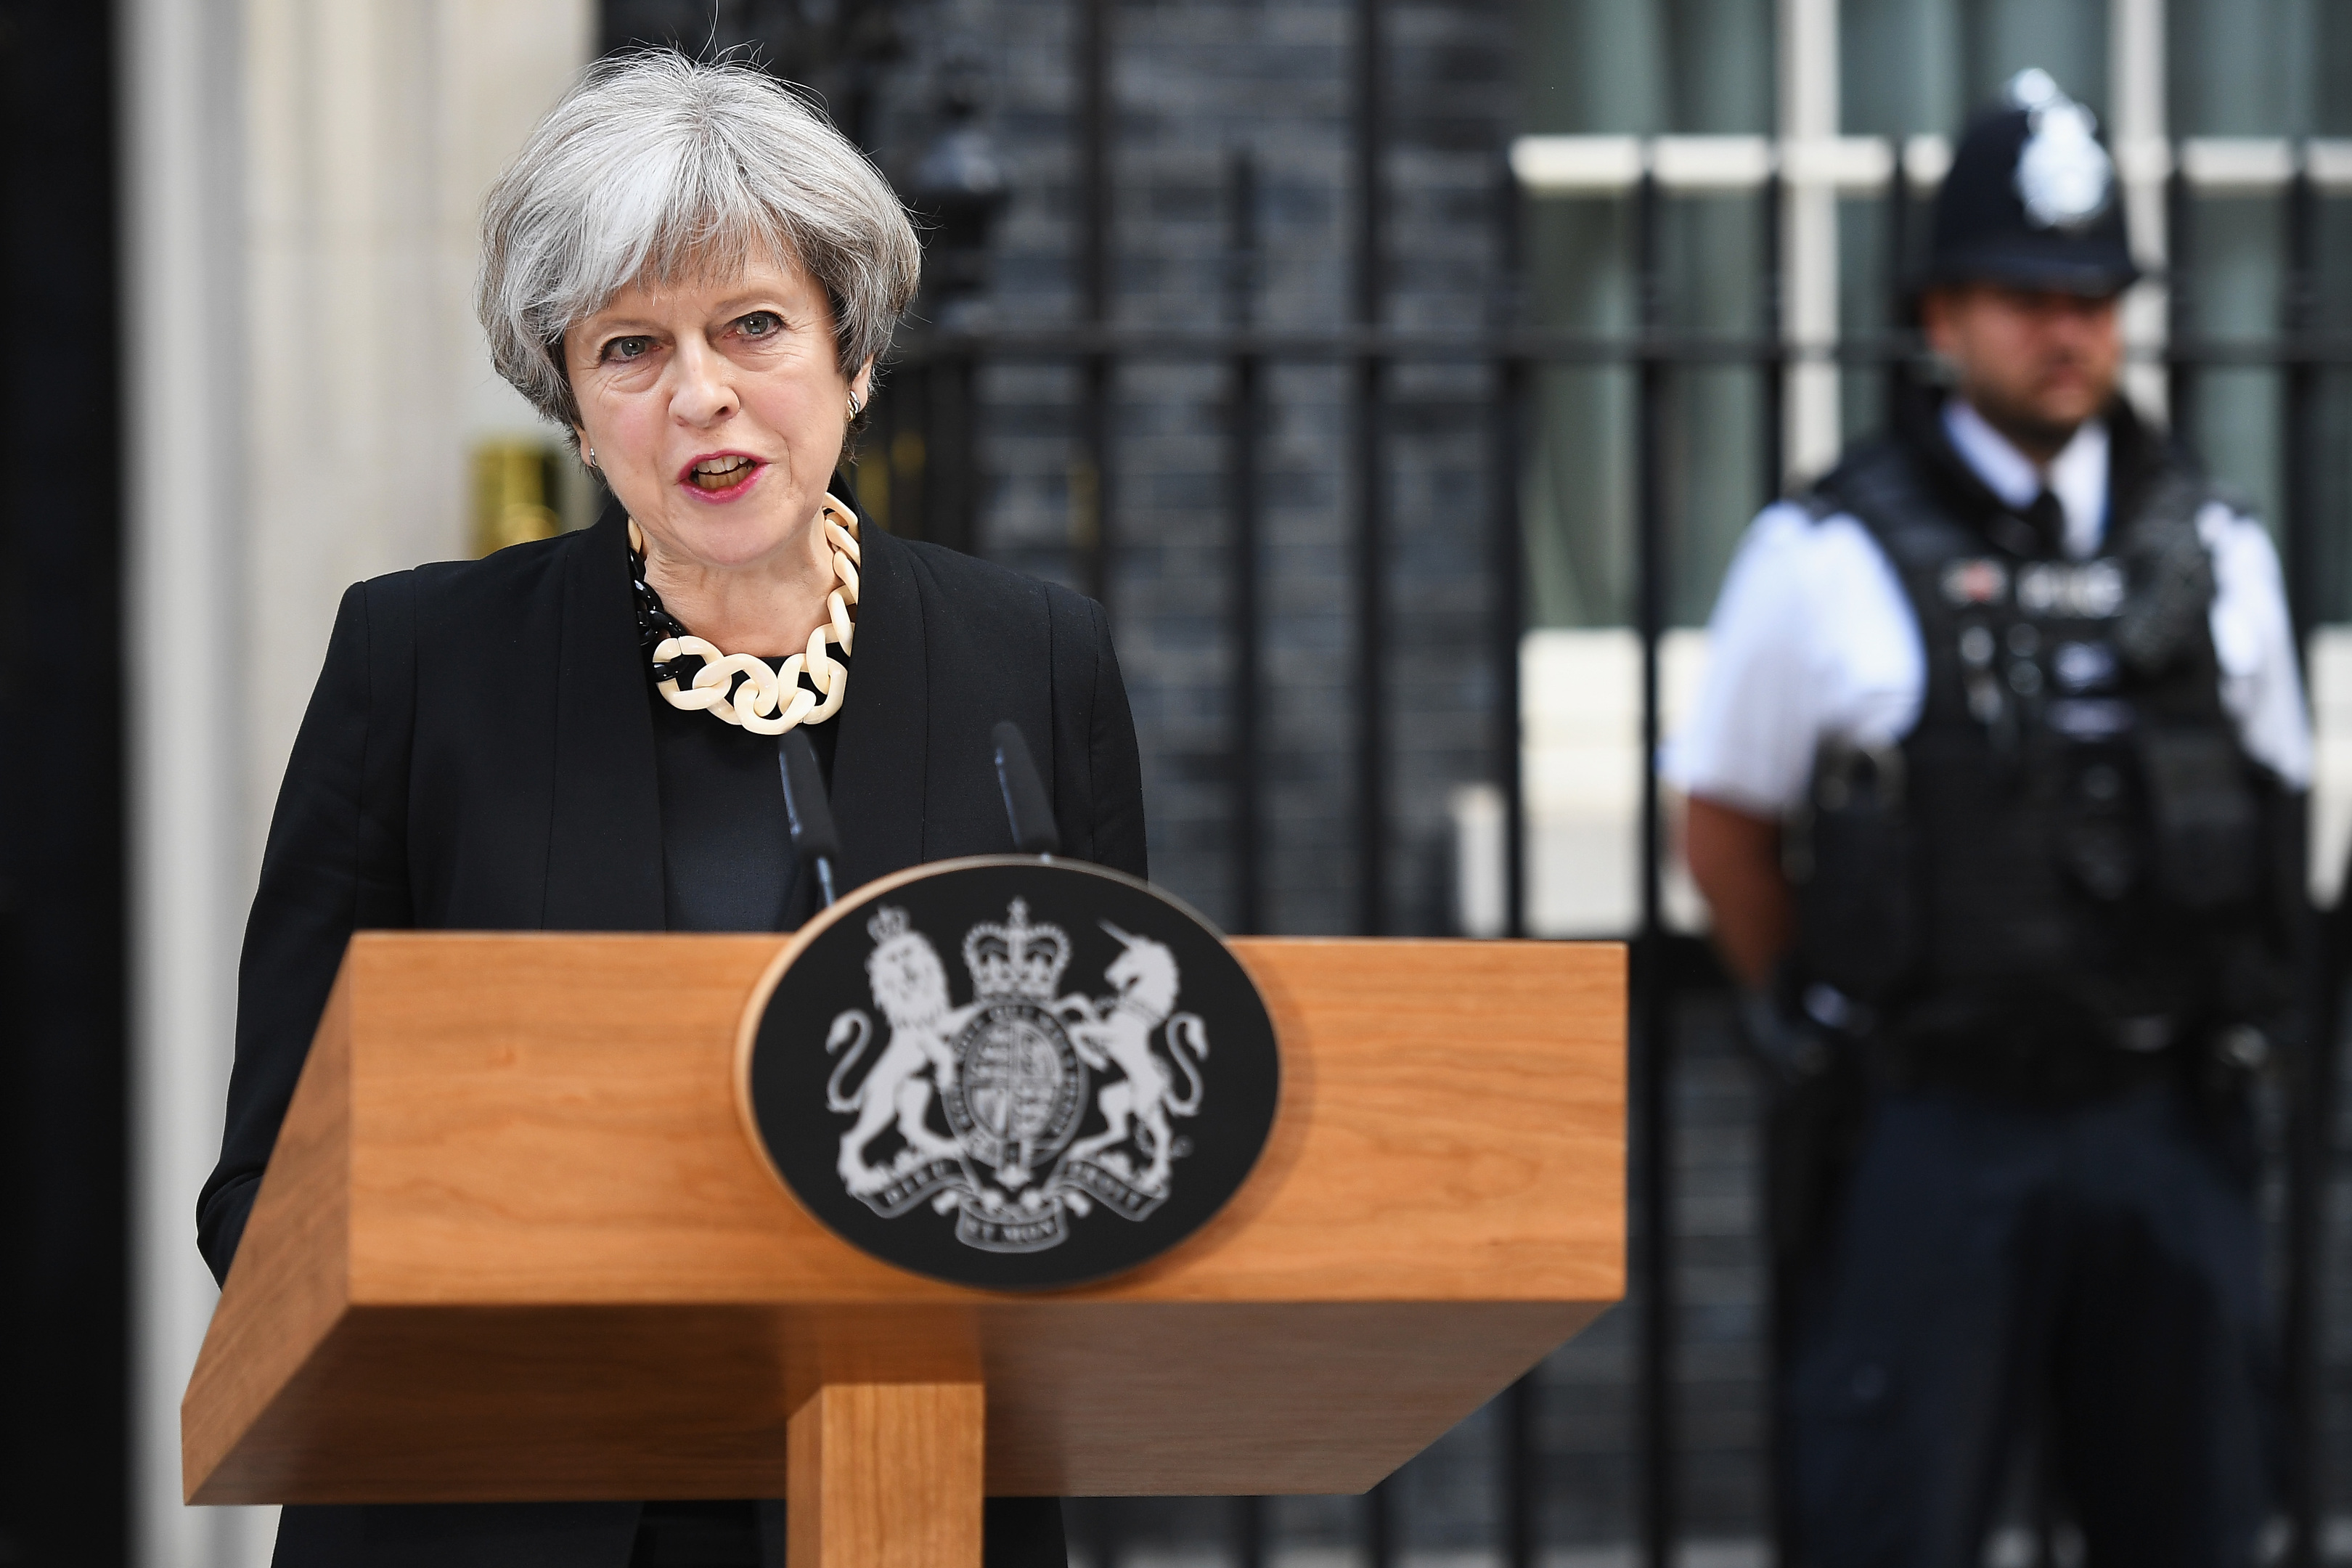 Britain's Prime Minister Theresa May addresses the media as she makes a statement, following a COBRA meeting in response to last night's London terror attack (Leon Neal/Getty Images)